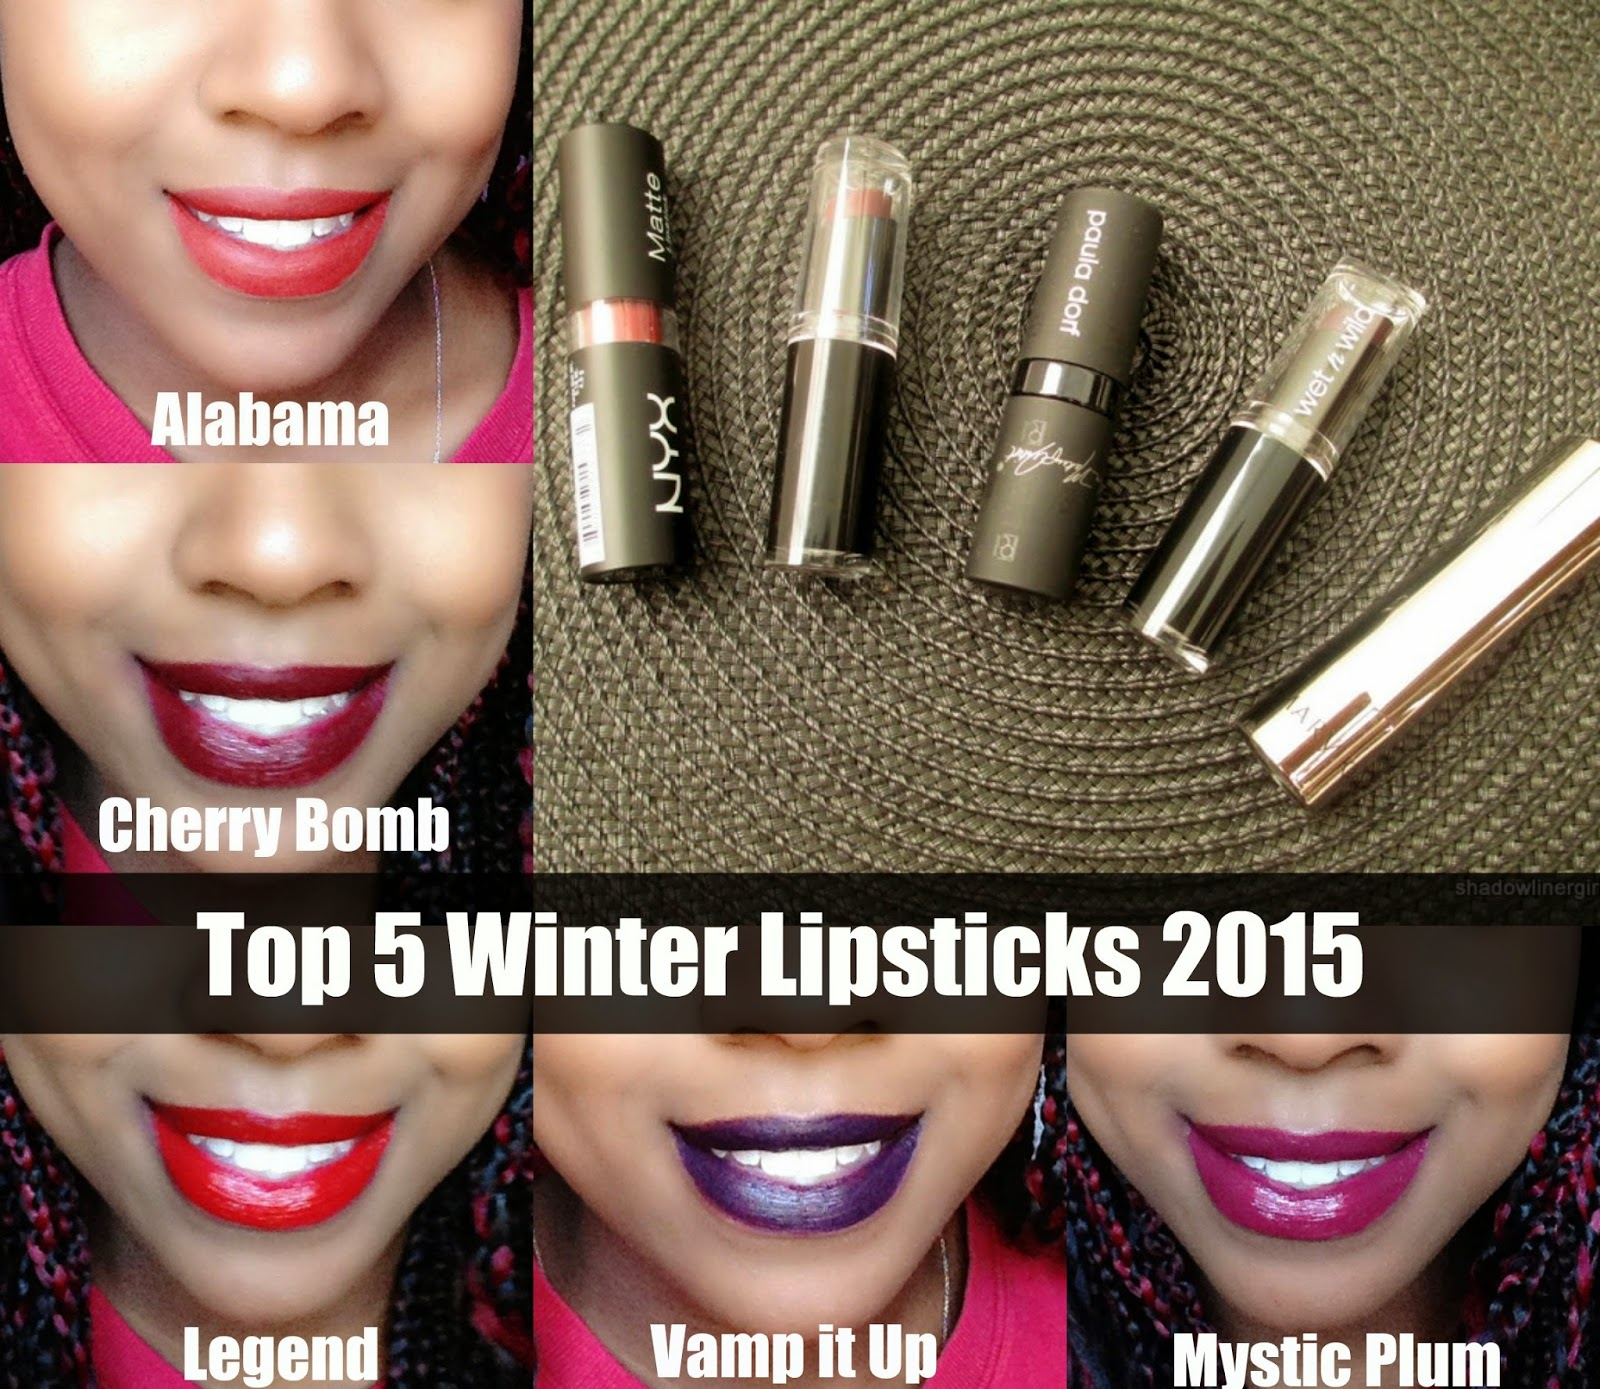 Top 5 Winter Lipsticks 2015